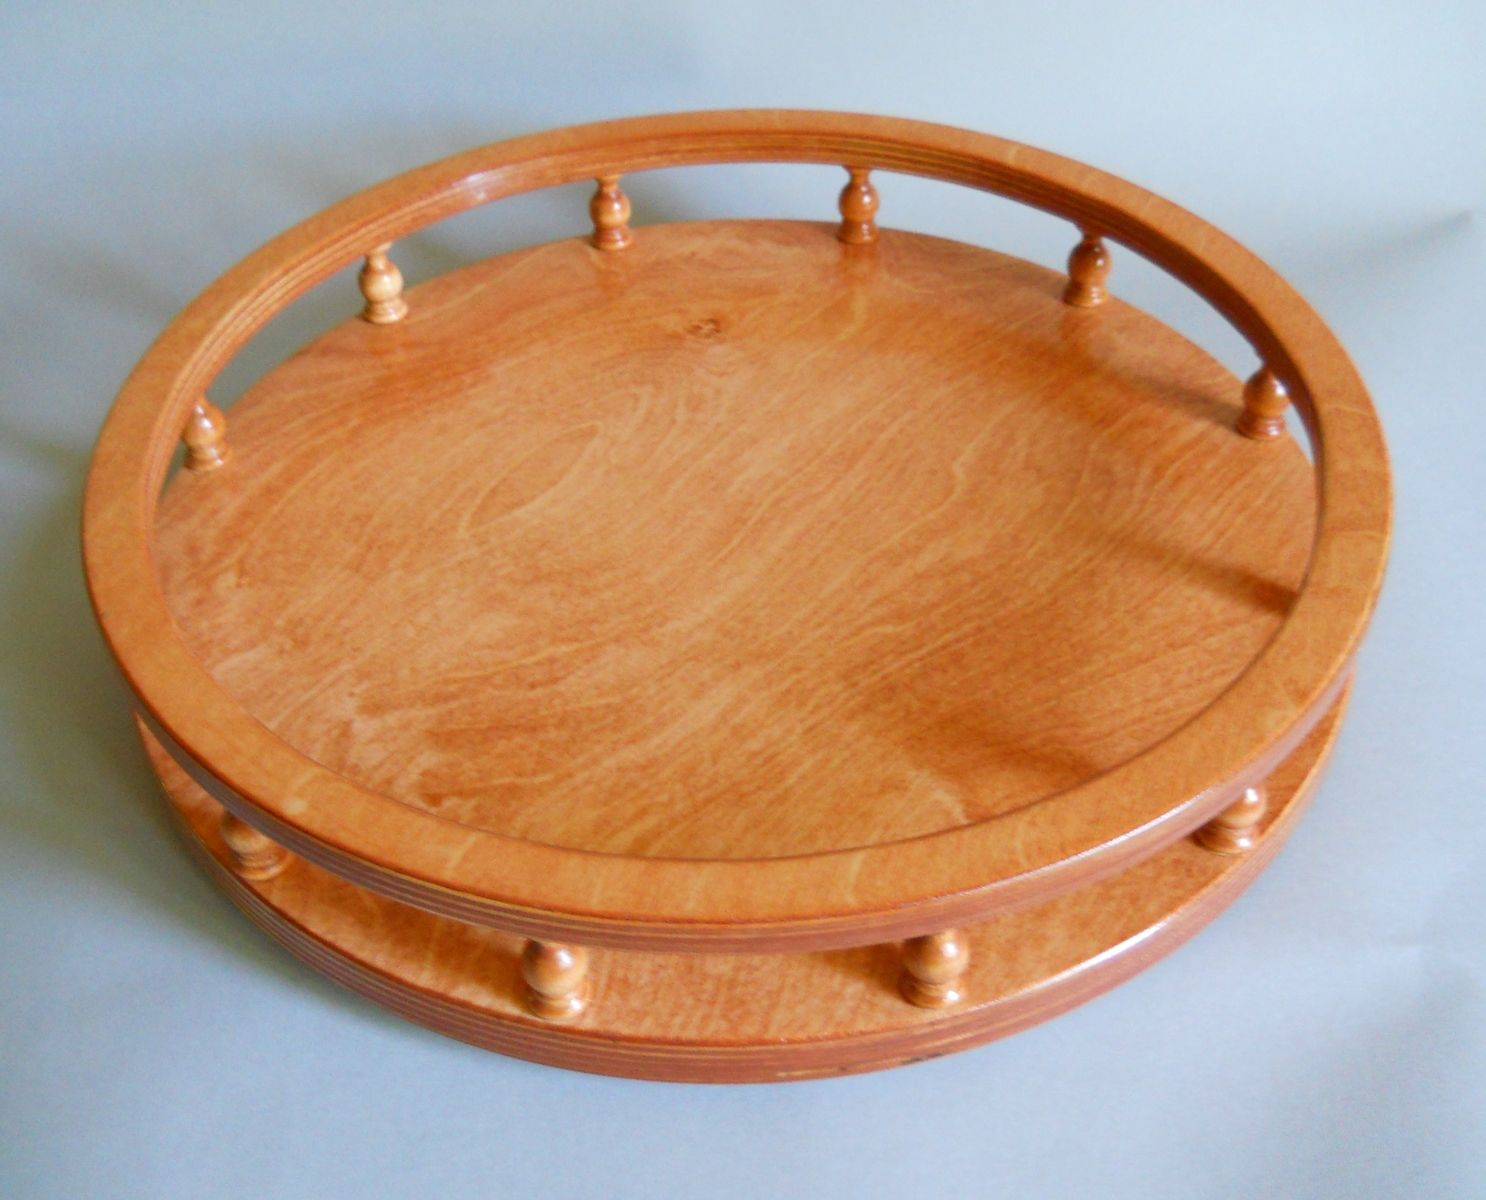 Hand Crafted Lazy Susan With Finials, Tray, Counter Or. Decorating Ideas For Small Living Room Pinterest. Modern Zen Style Living Room. Mid Century Modern Living Room Fireplace. Library Community Living Room. Decorating Ideas Window Treatments Living Room. Living Room Art Projects. Living Room Green Colors. Earthy Living Room Decor